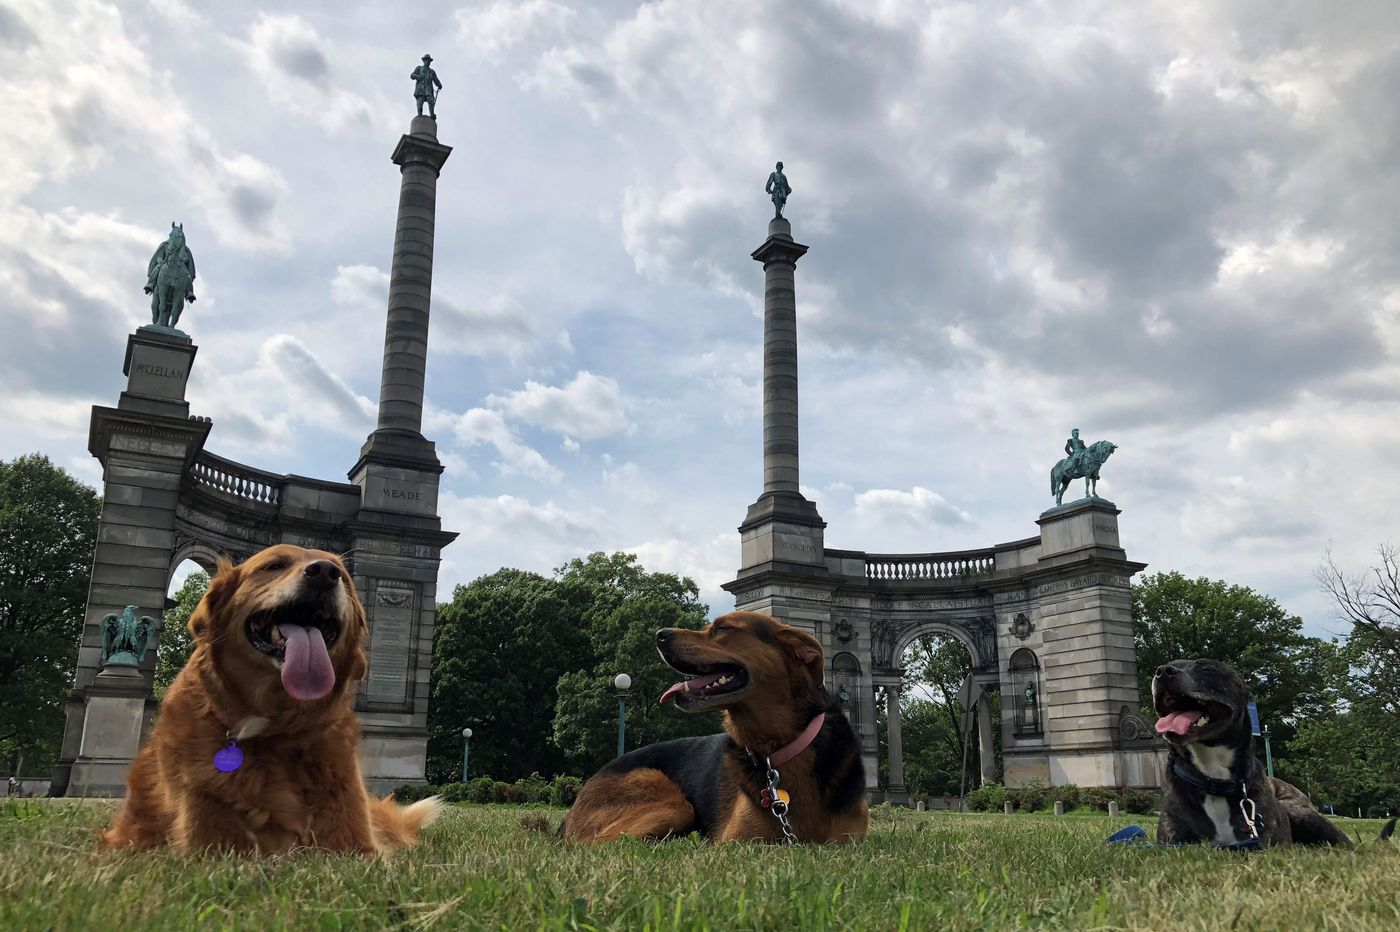 Dogs become models in the Association of Public Art's Instagram challenge